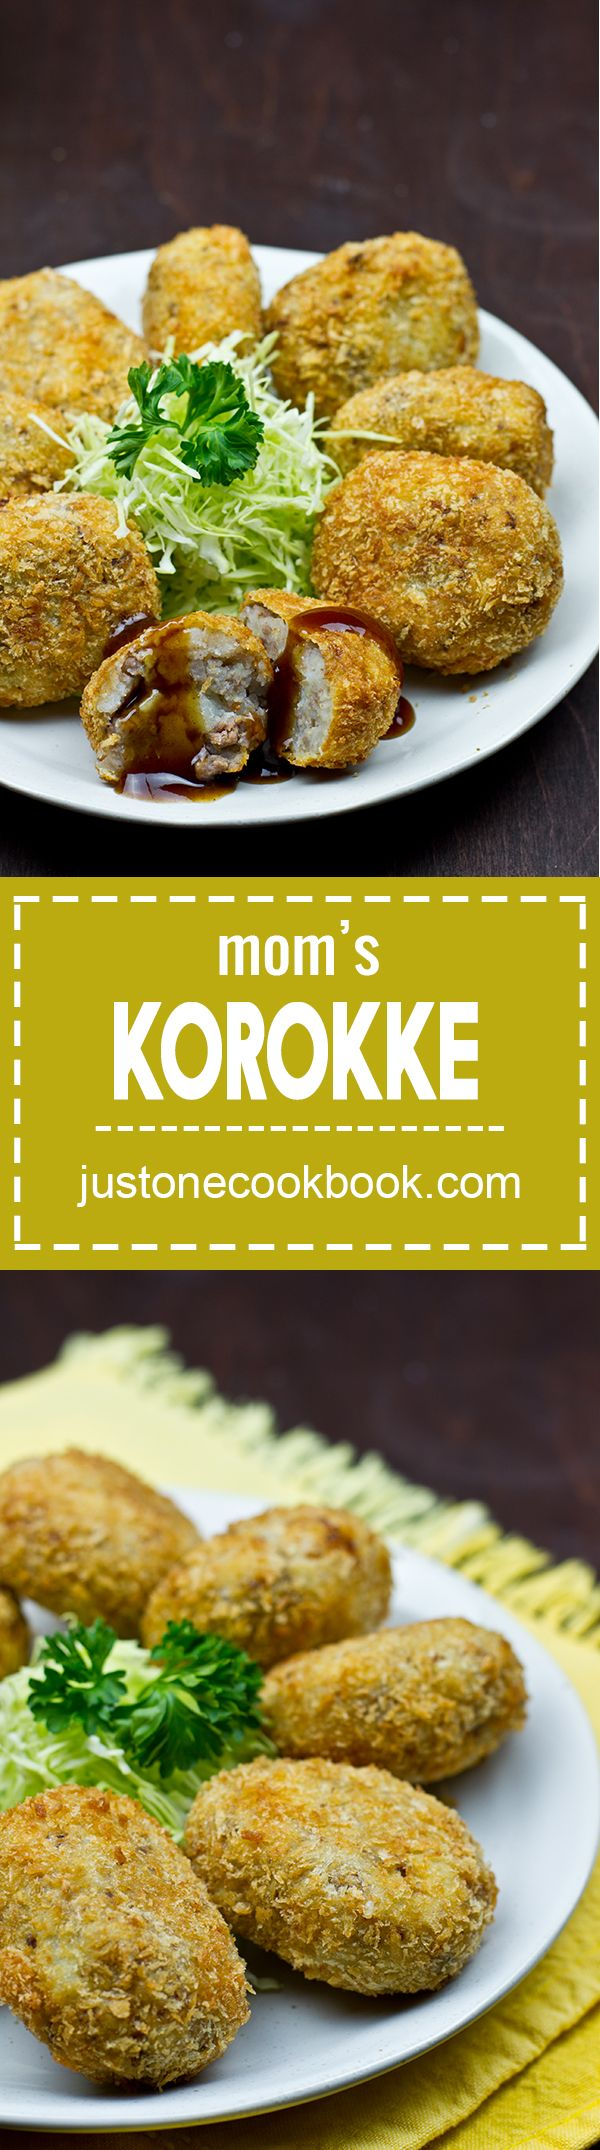 Mom's Korokke (Croquette) コロッケ | Easy Japanese Recipes at JustOneCookbook.com